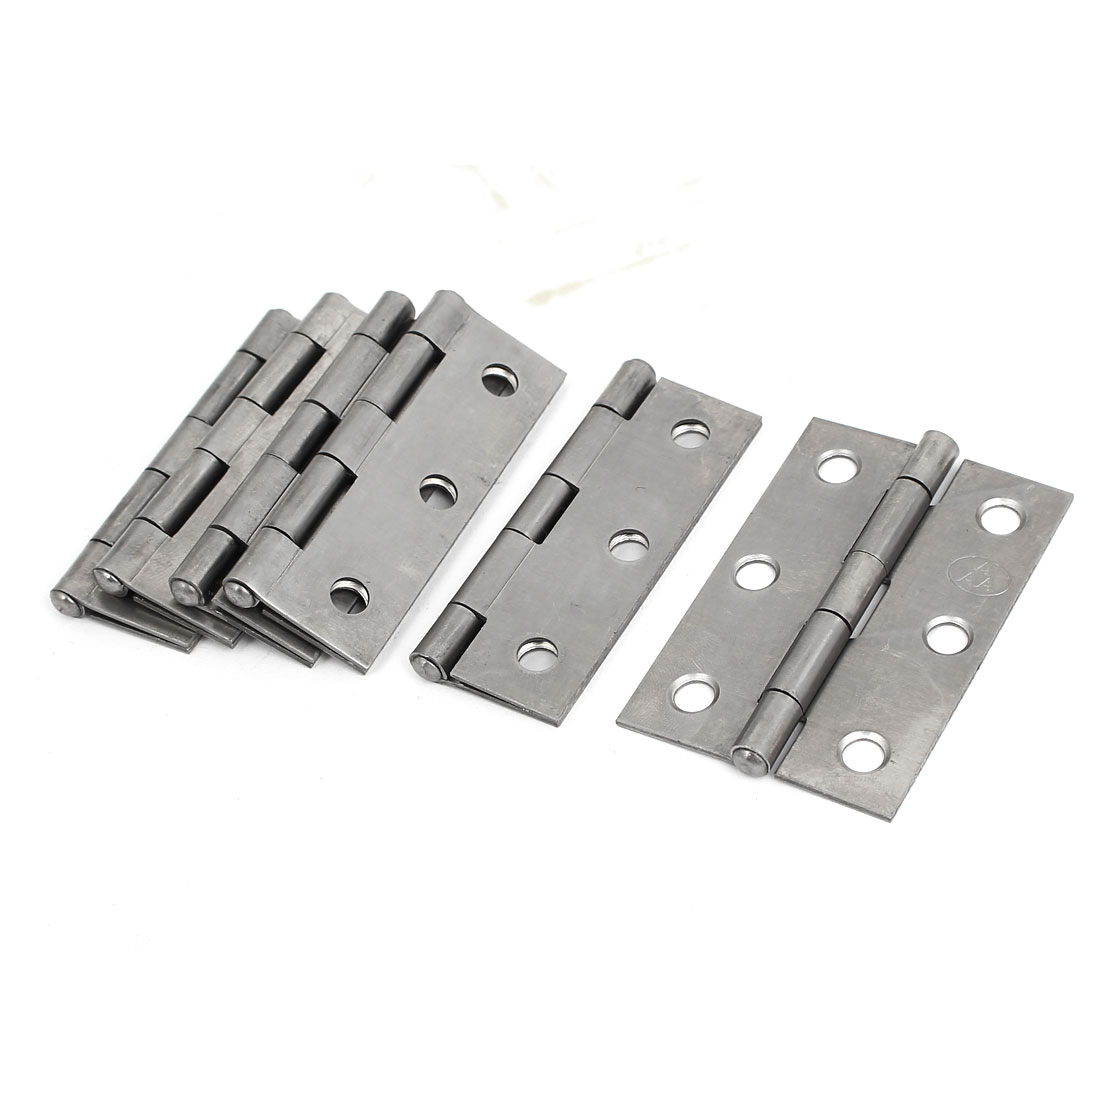 "Cupboard Closet Foldable Iron Door Butt Hinge Hardware Silver Gray 2.5"" Long 6pcs"